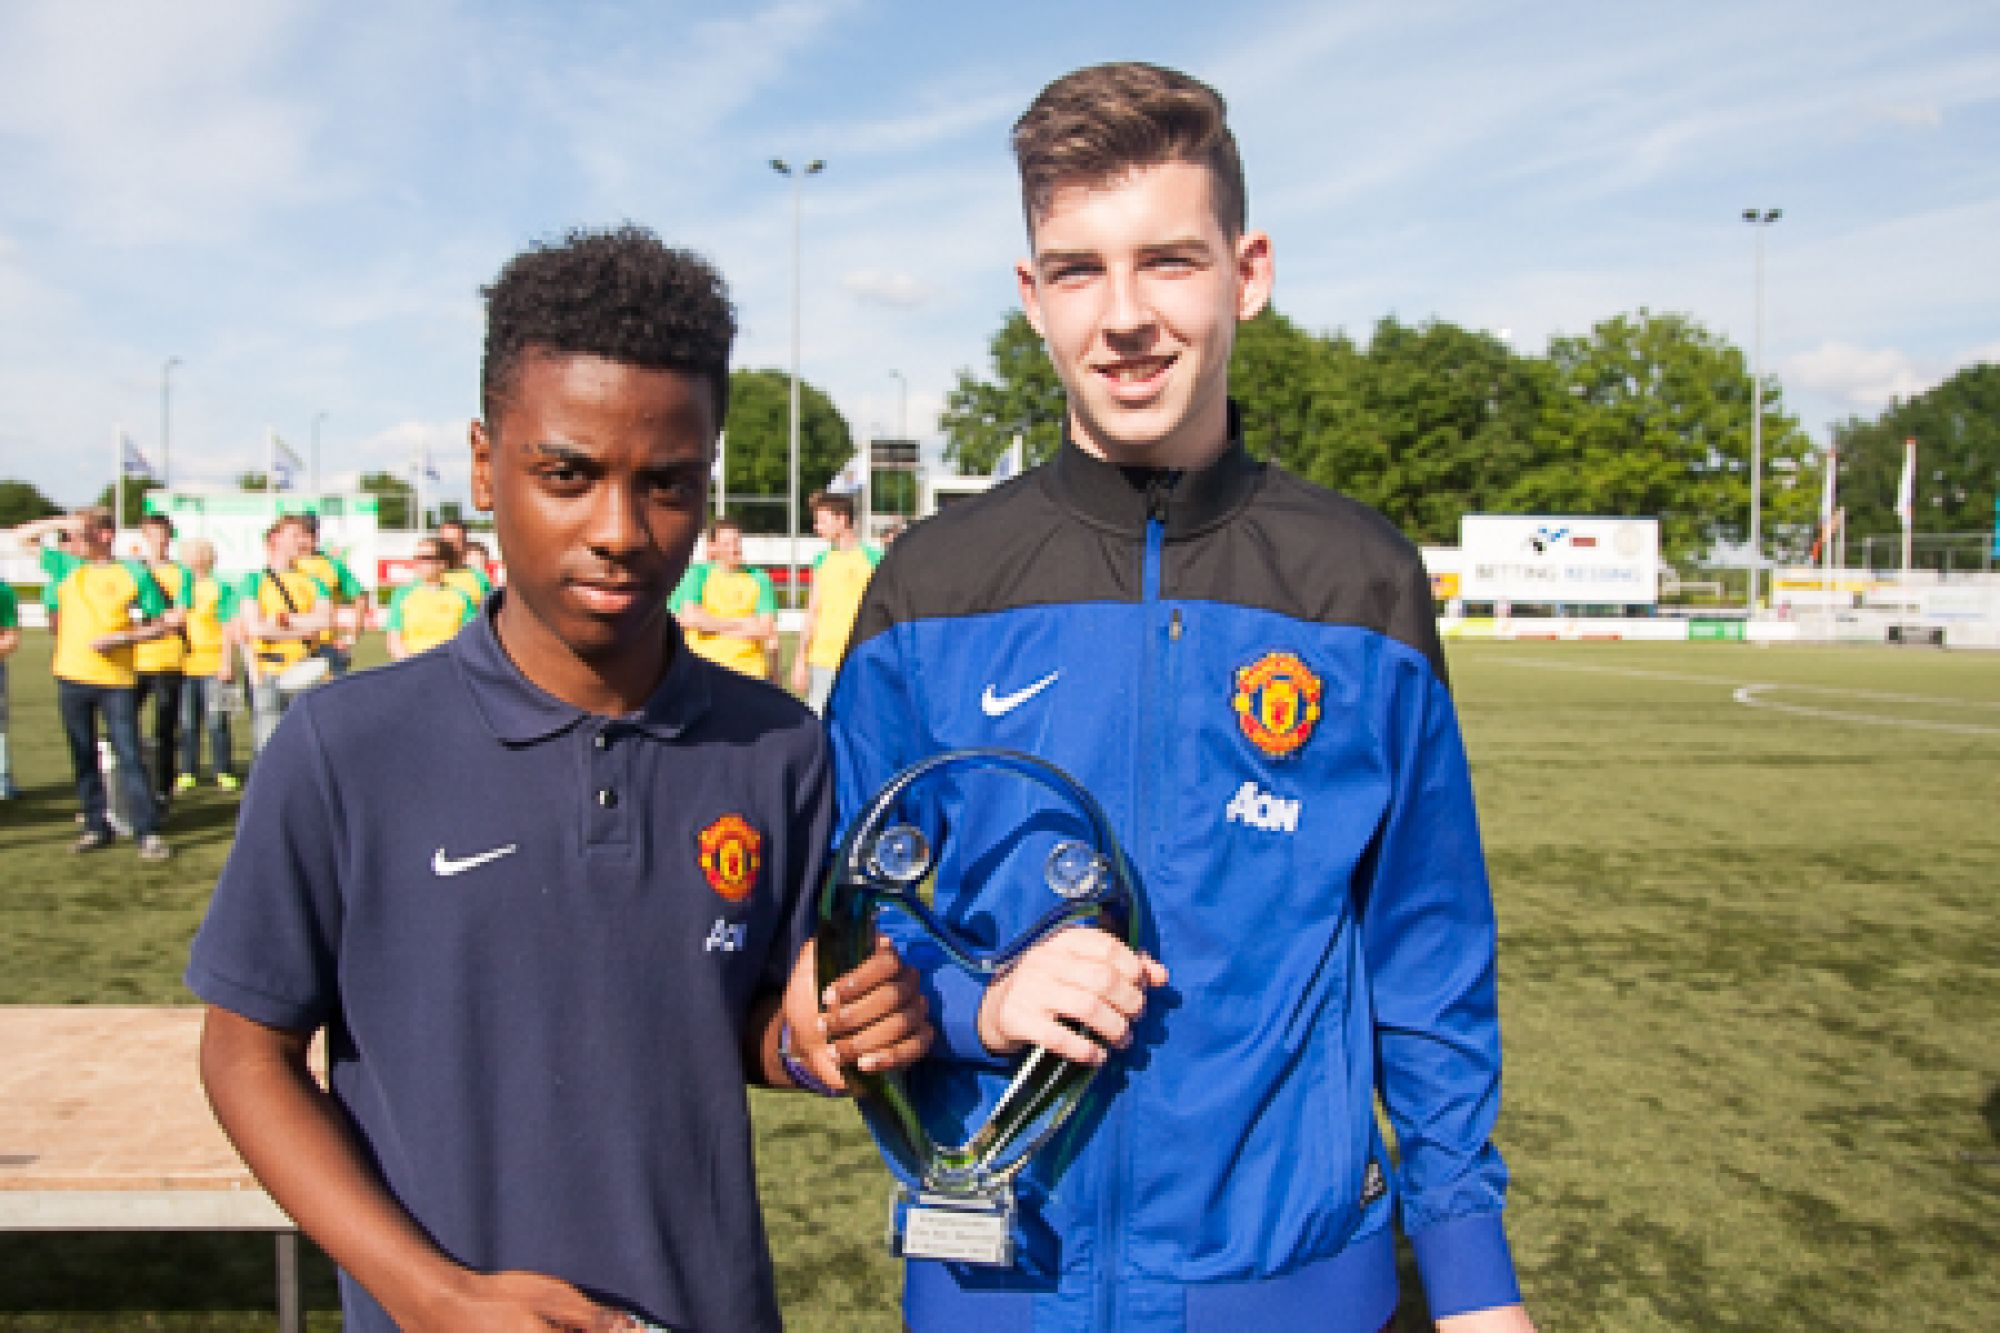 Marveld Tournament 2014 - Fair Play Award Manchester United